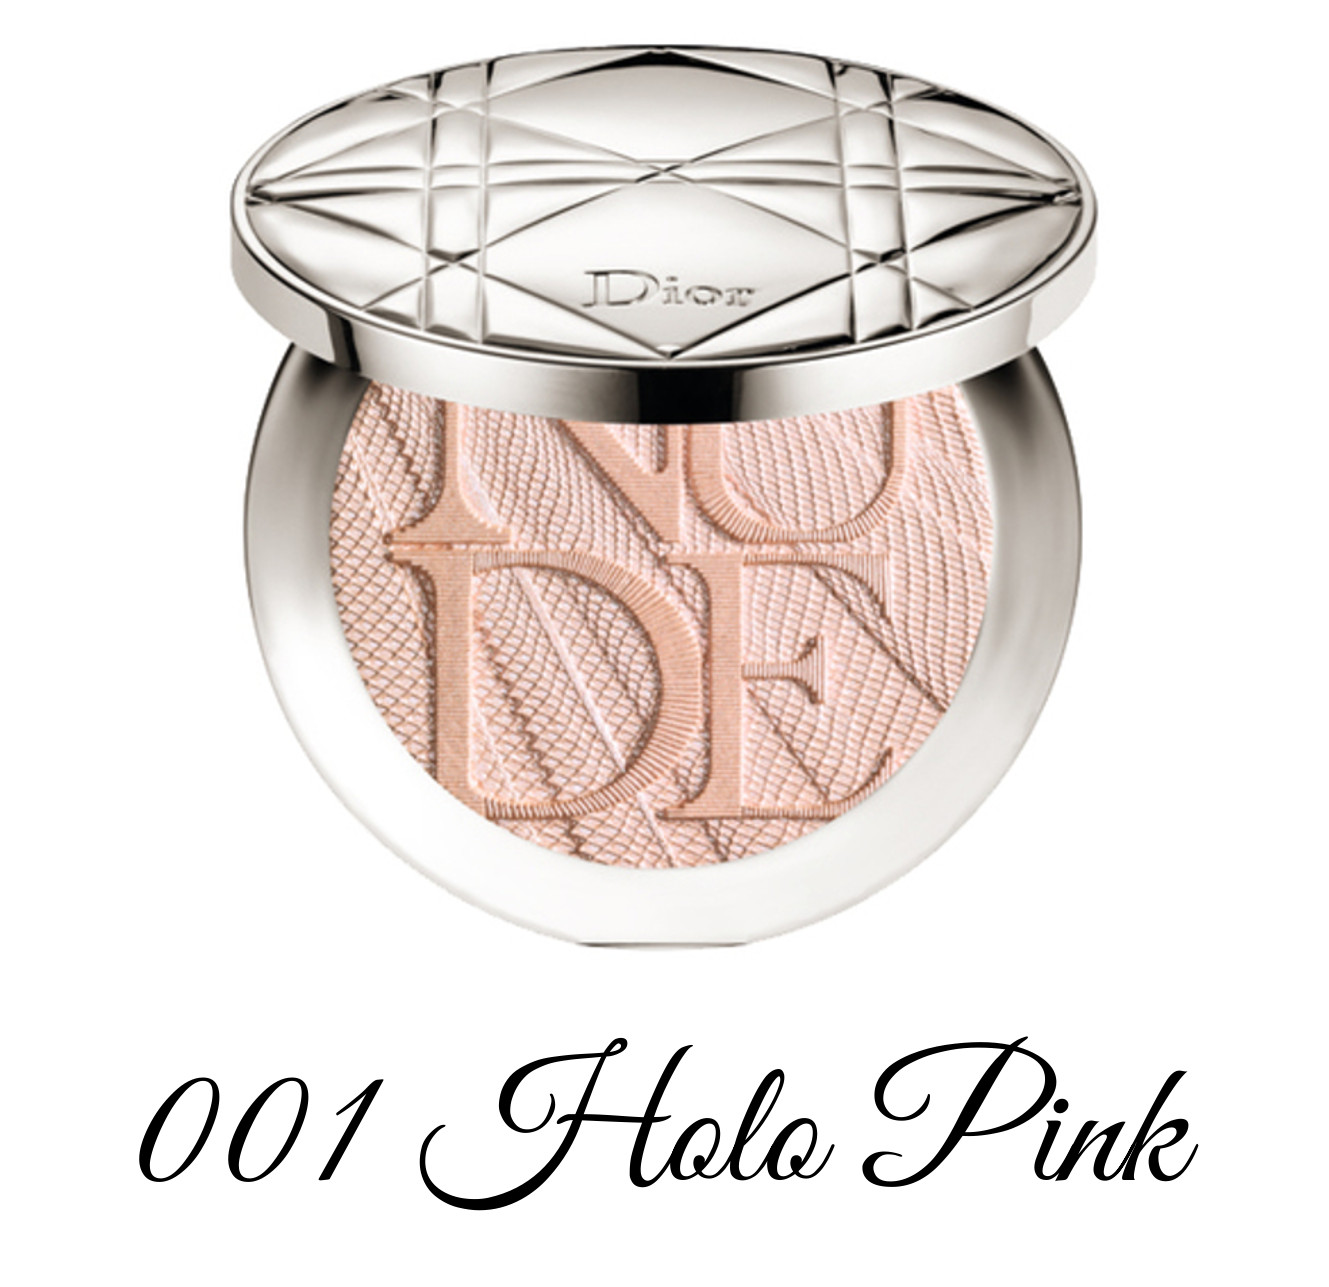 Dior Spring 2018 Collection GLOW ADDICT Diorskin Nude Air Powder Compact 001 Holo Pink